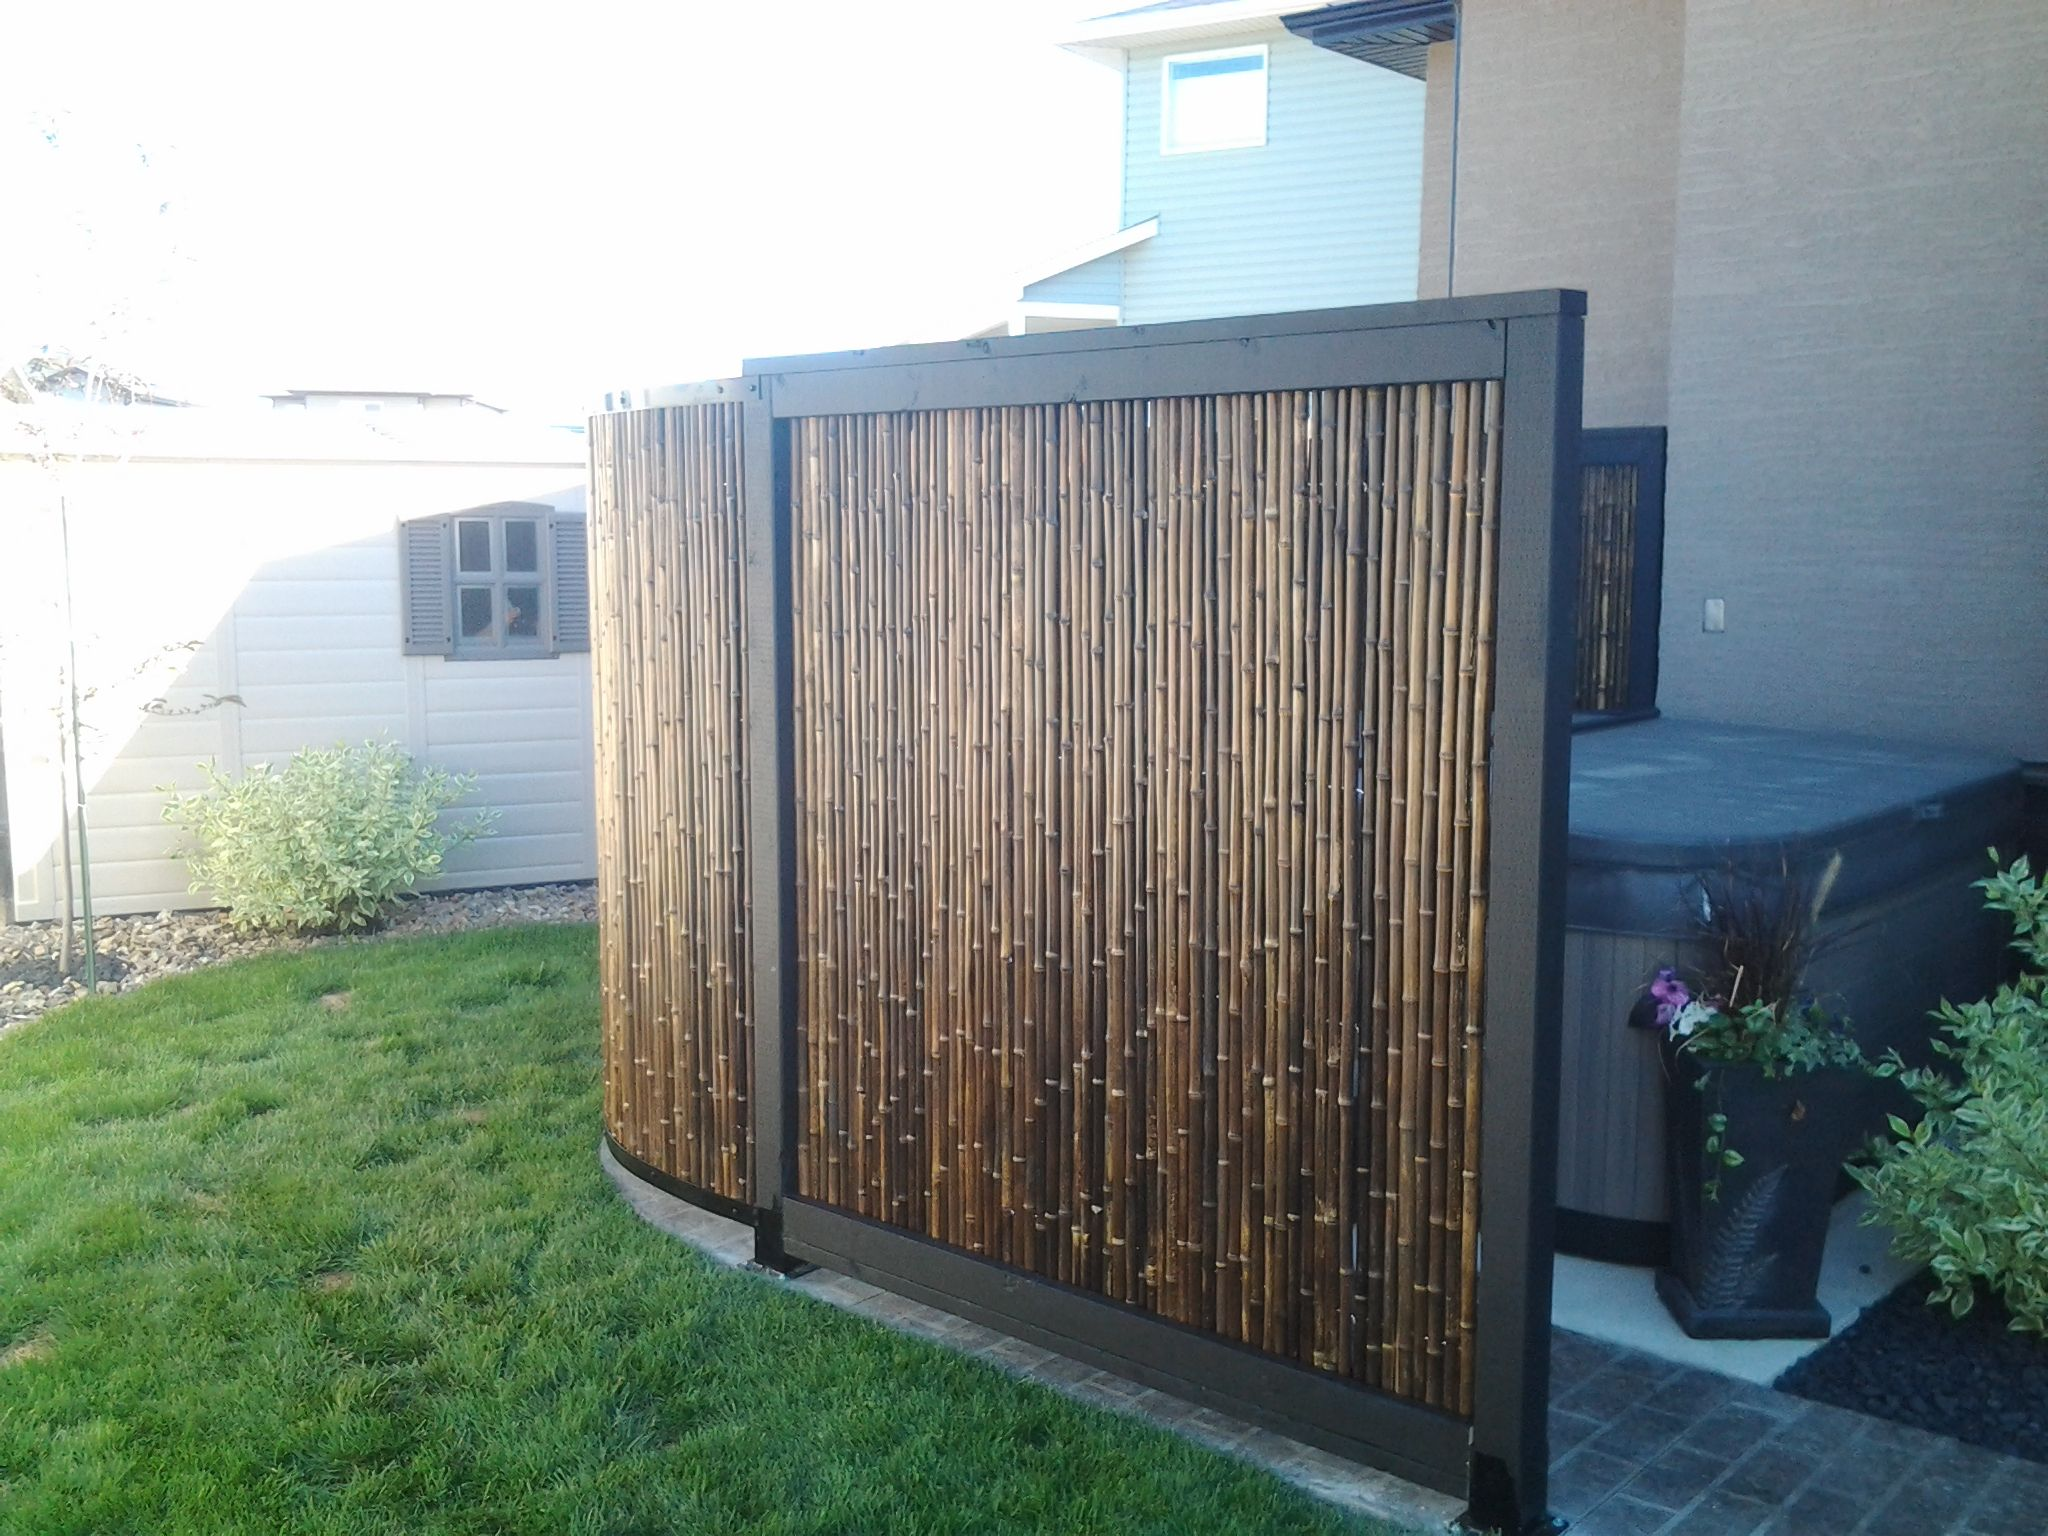 10 Garden Fence Ideas To Make Your Green Space More Beautiful